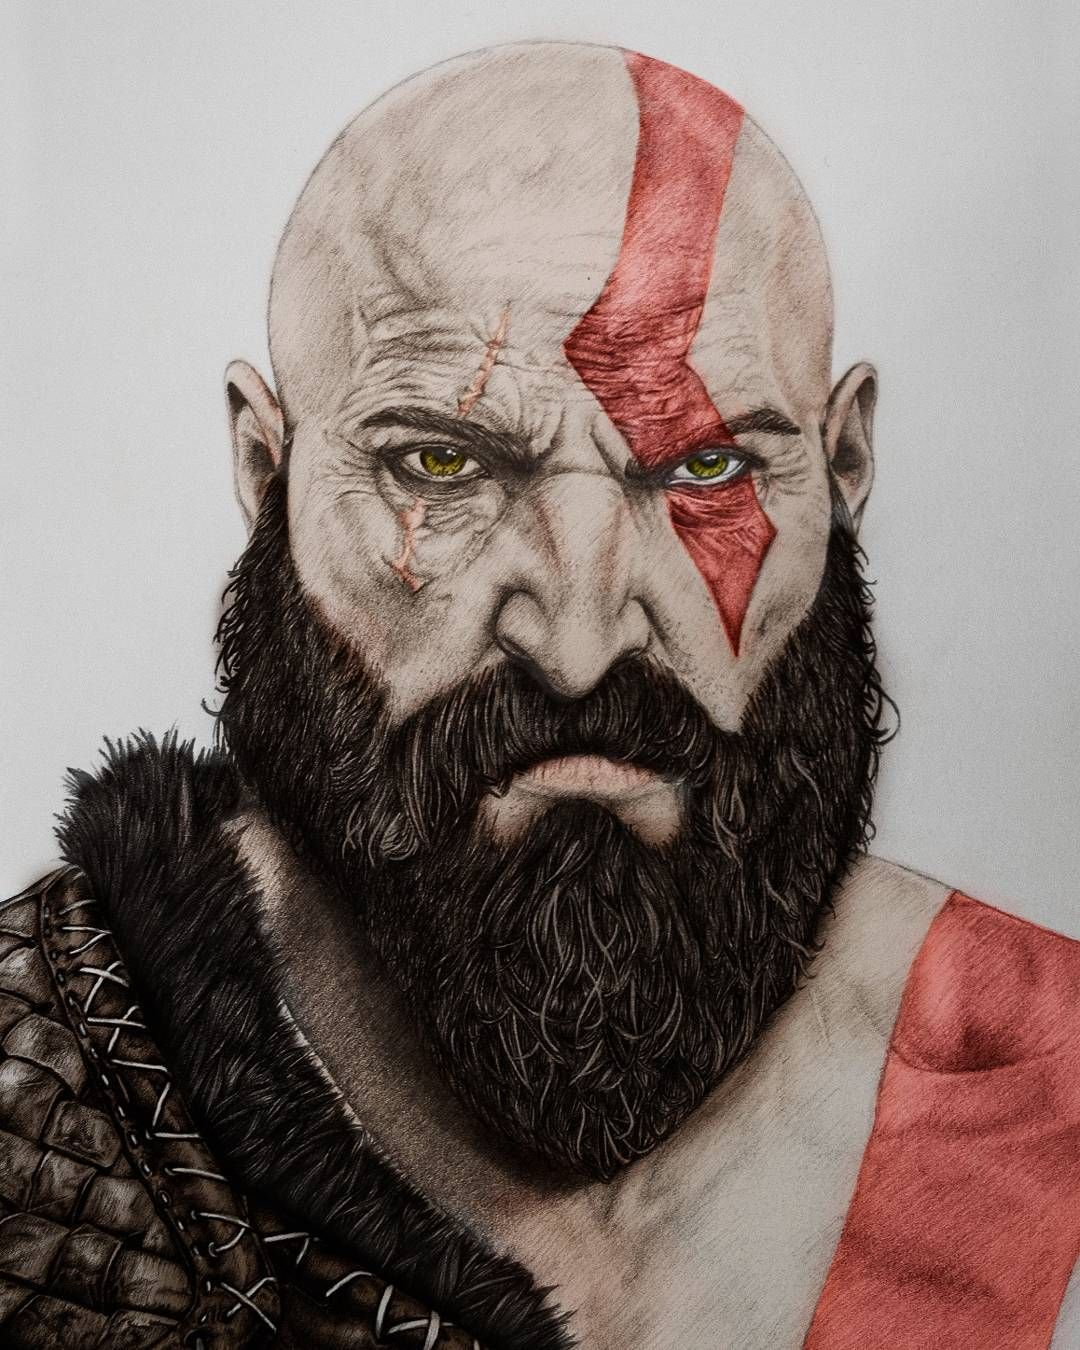 Decided To Play With My Kratos Drawing In Photoshop What Do